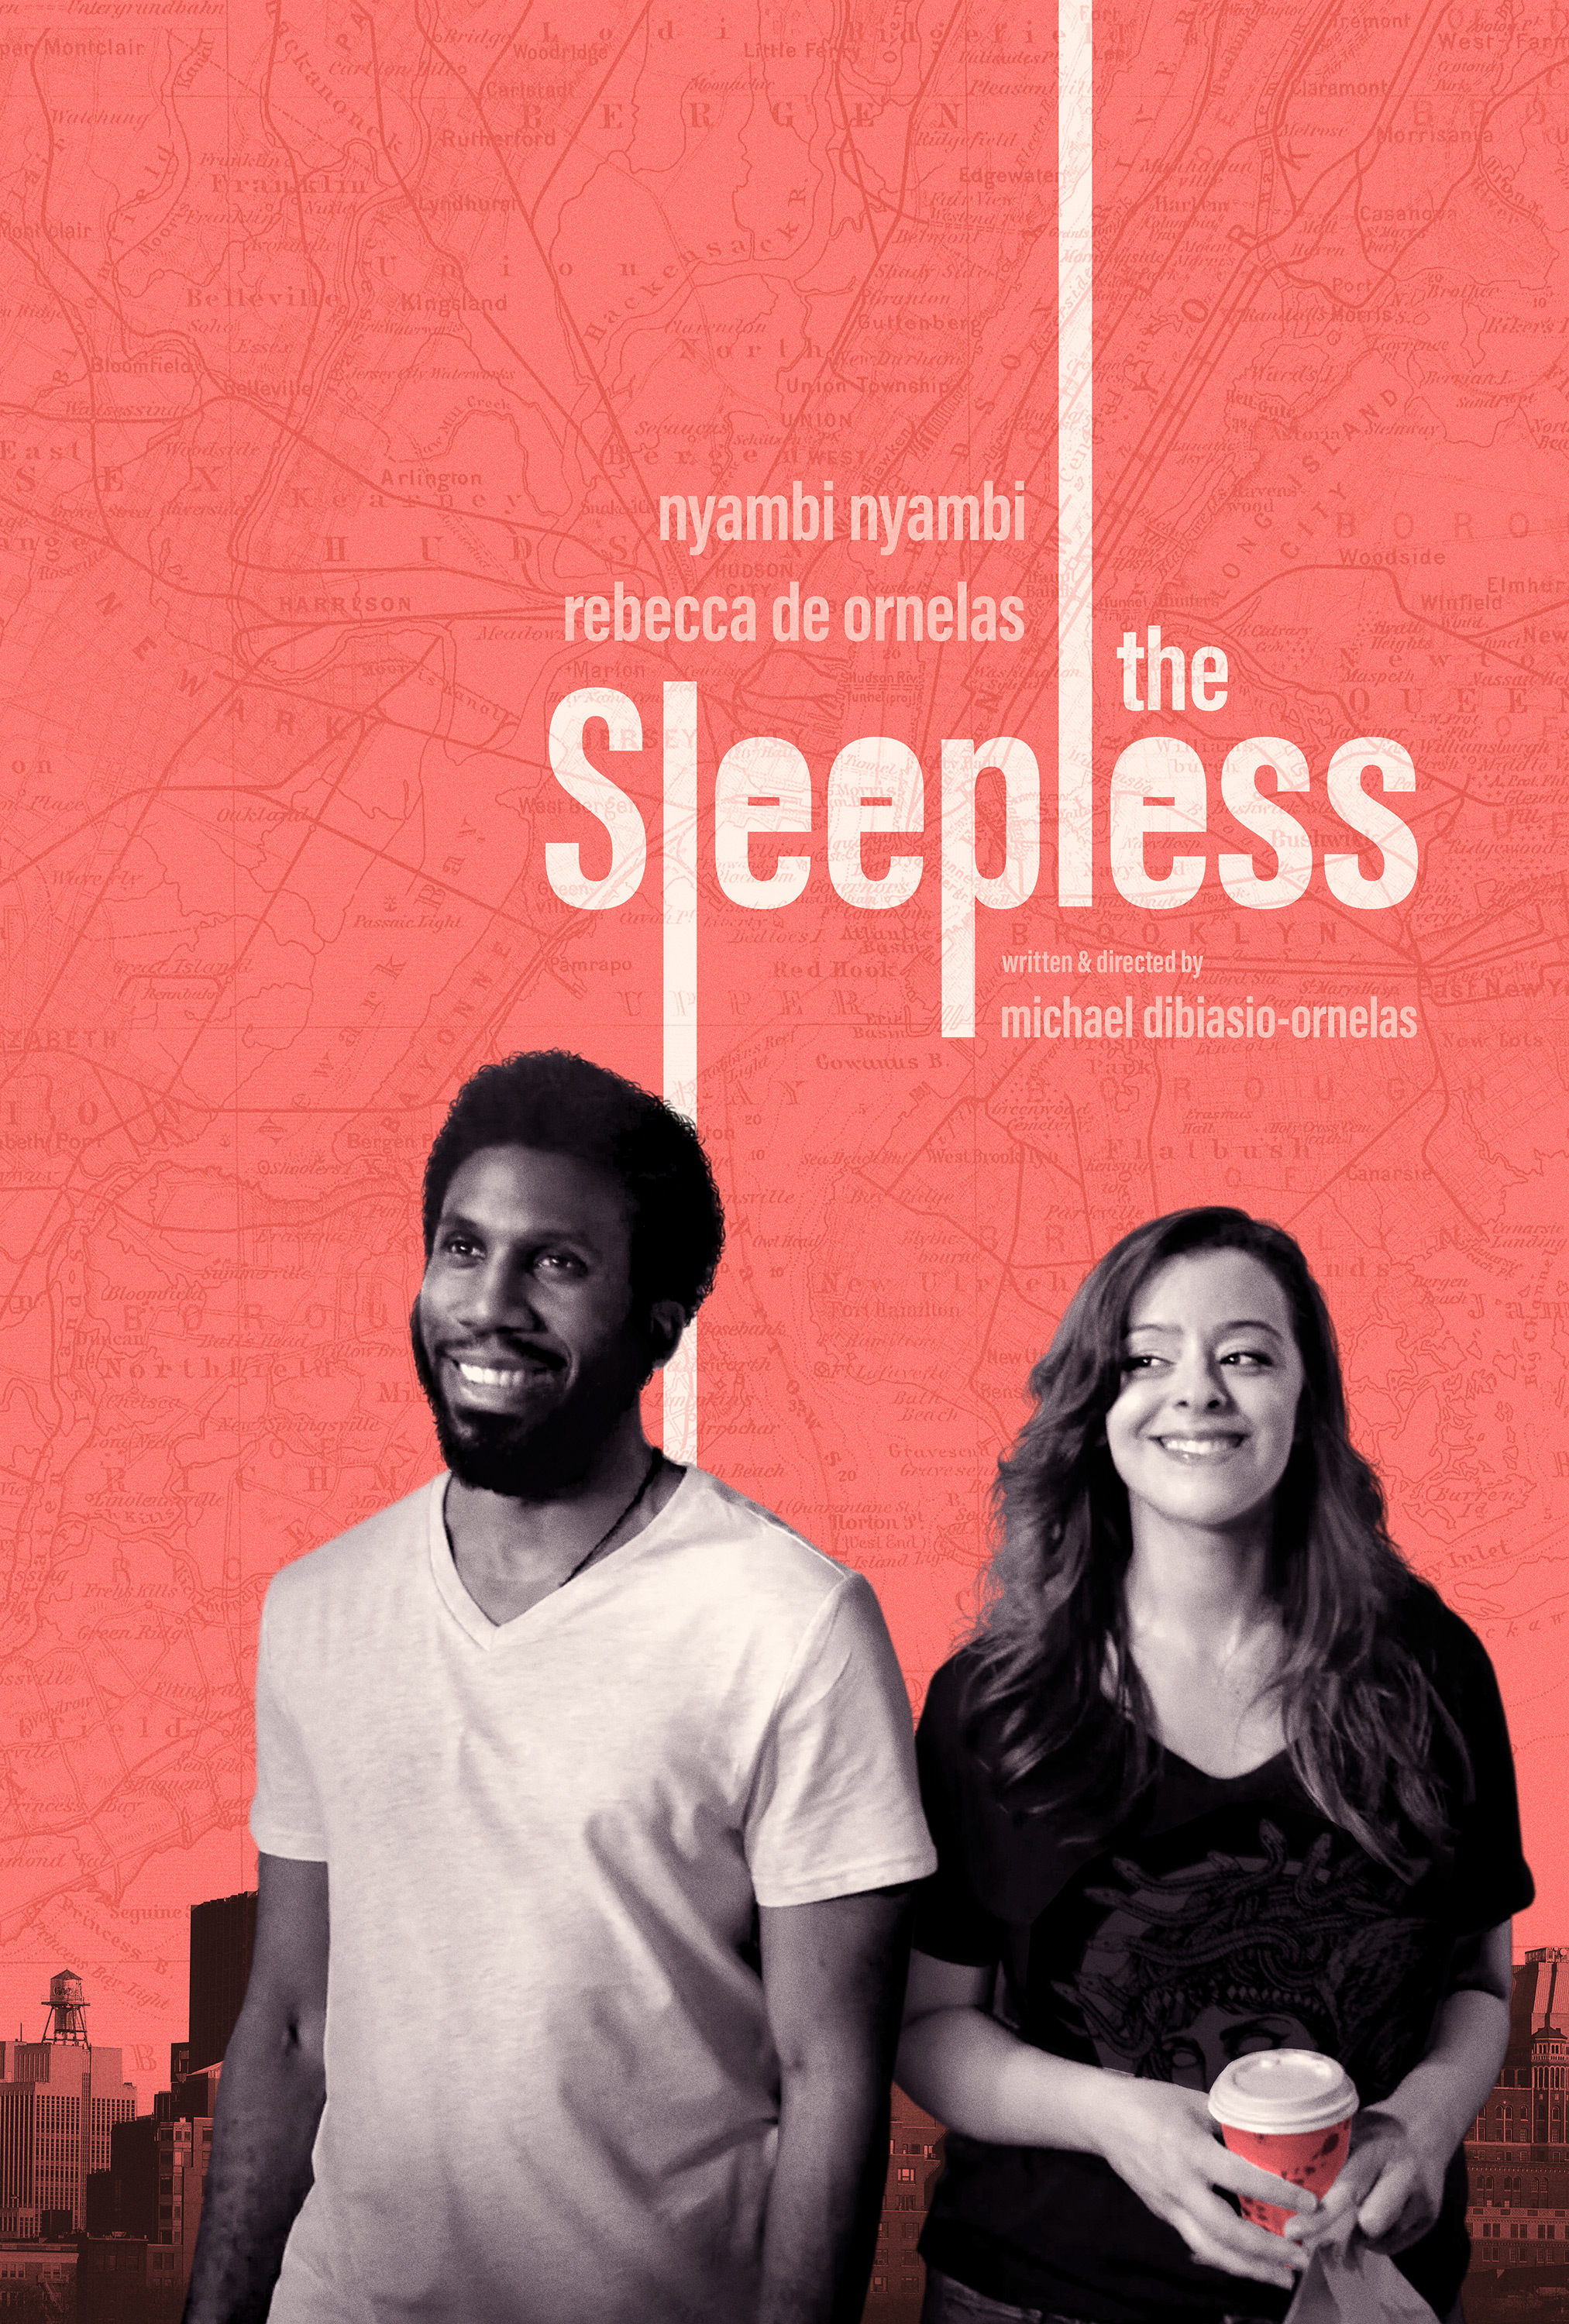 Download The Sleepless (2020) WebRip 720p Full Movie [In English] With Hindi Subtitles Full Movie Online On 1xcinema.com